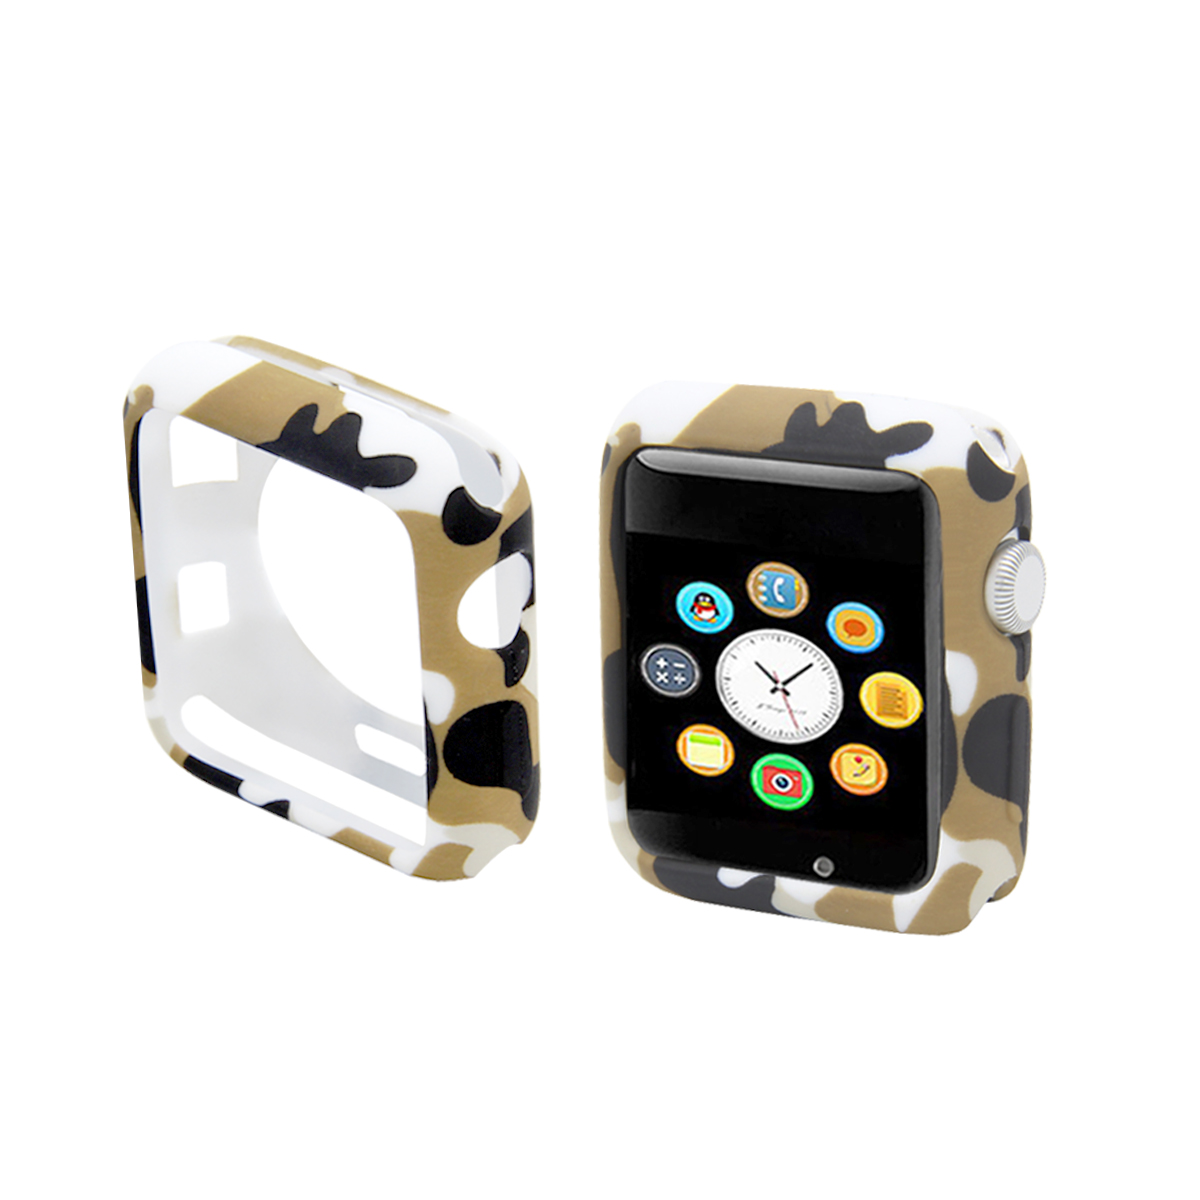 Camouflage watch case for apple watch protective cover 38mm protector apple watch 42mm for iwatch series 3 2 1 watch accessories in Watch Cases from Watches